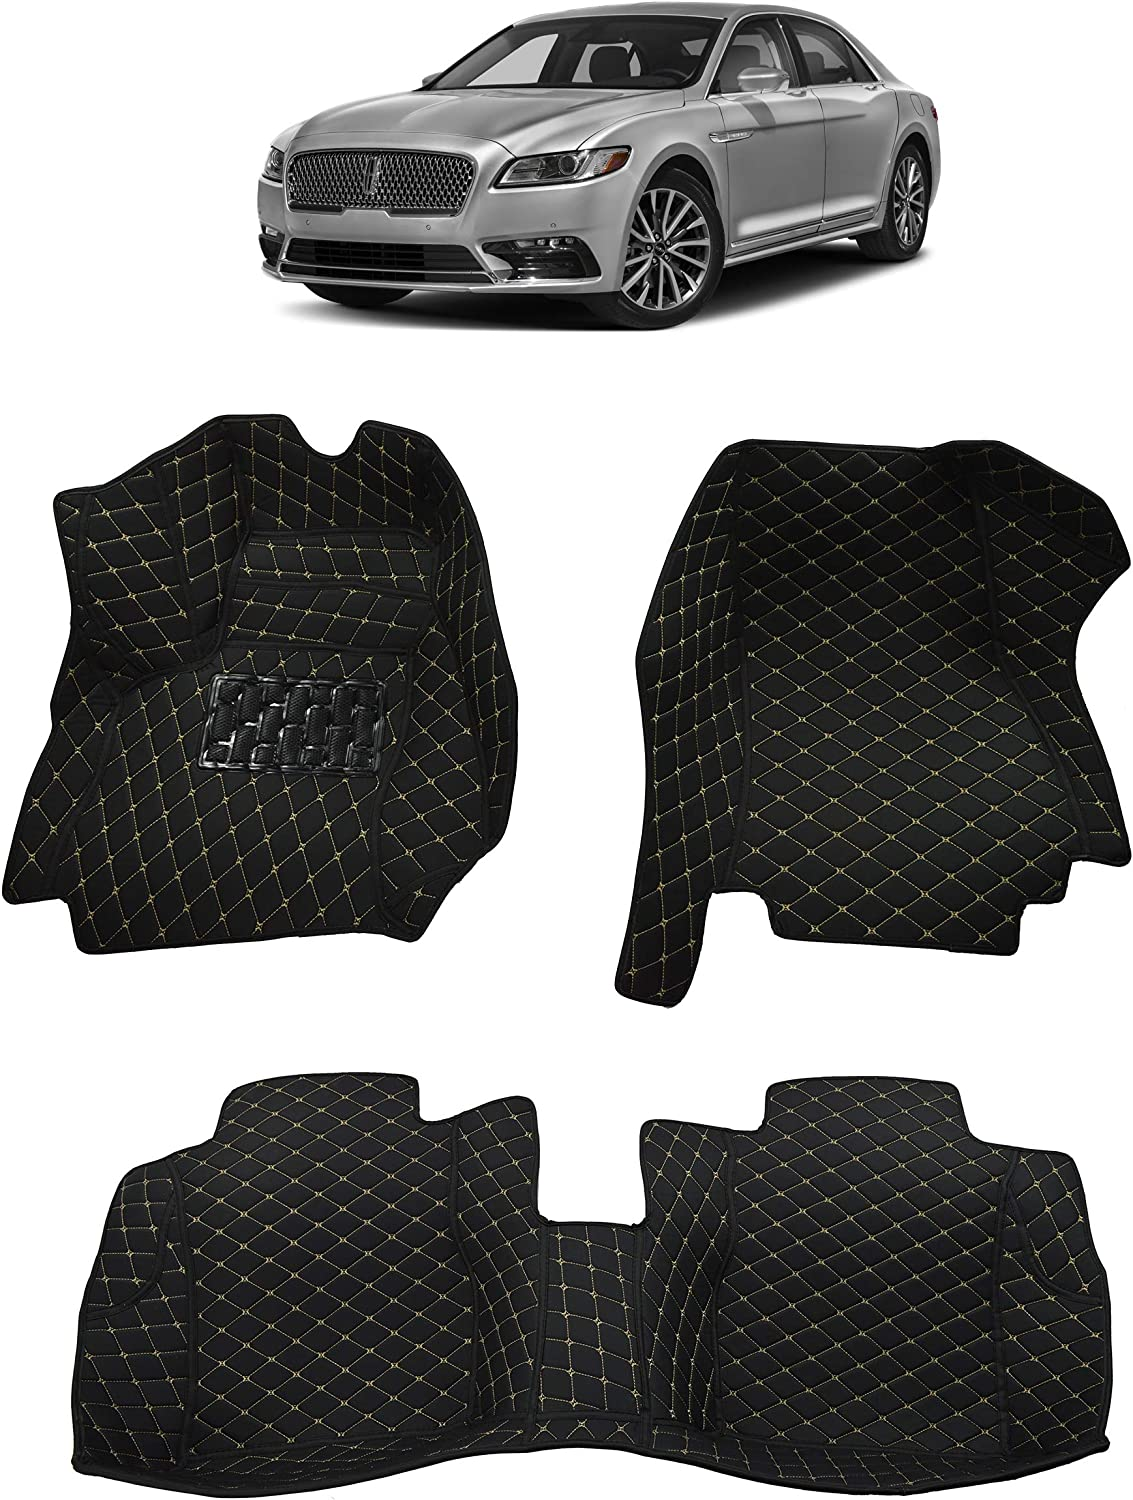 Black Single Layer All Weather Heavy Duty Full Coverage Floor Mat Floor Protection Custom Fit Made in USA Front and Rear for 2017 2018 2019 2020 Lincoln Continental Sedan